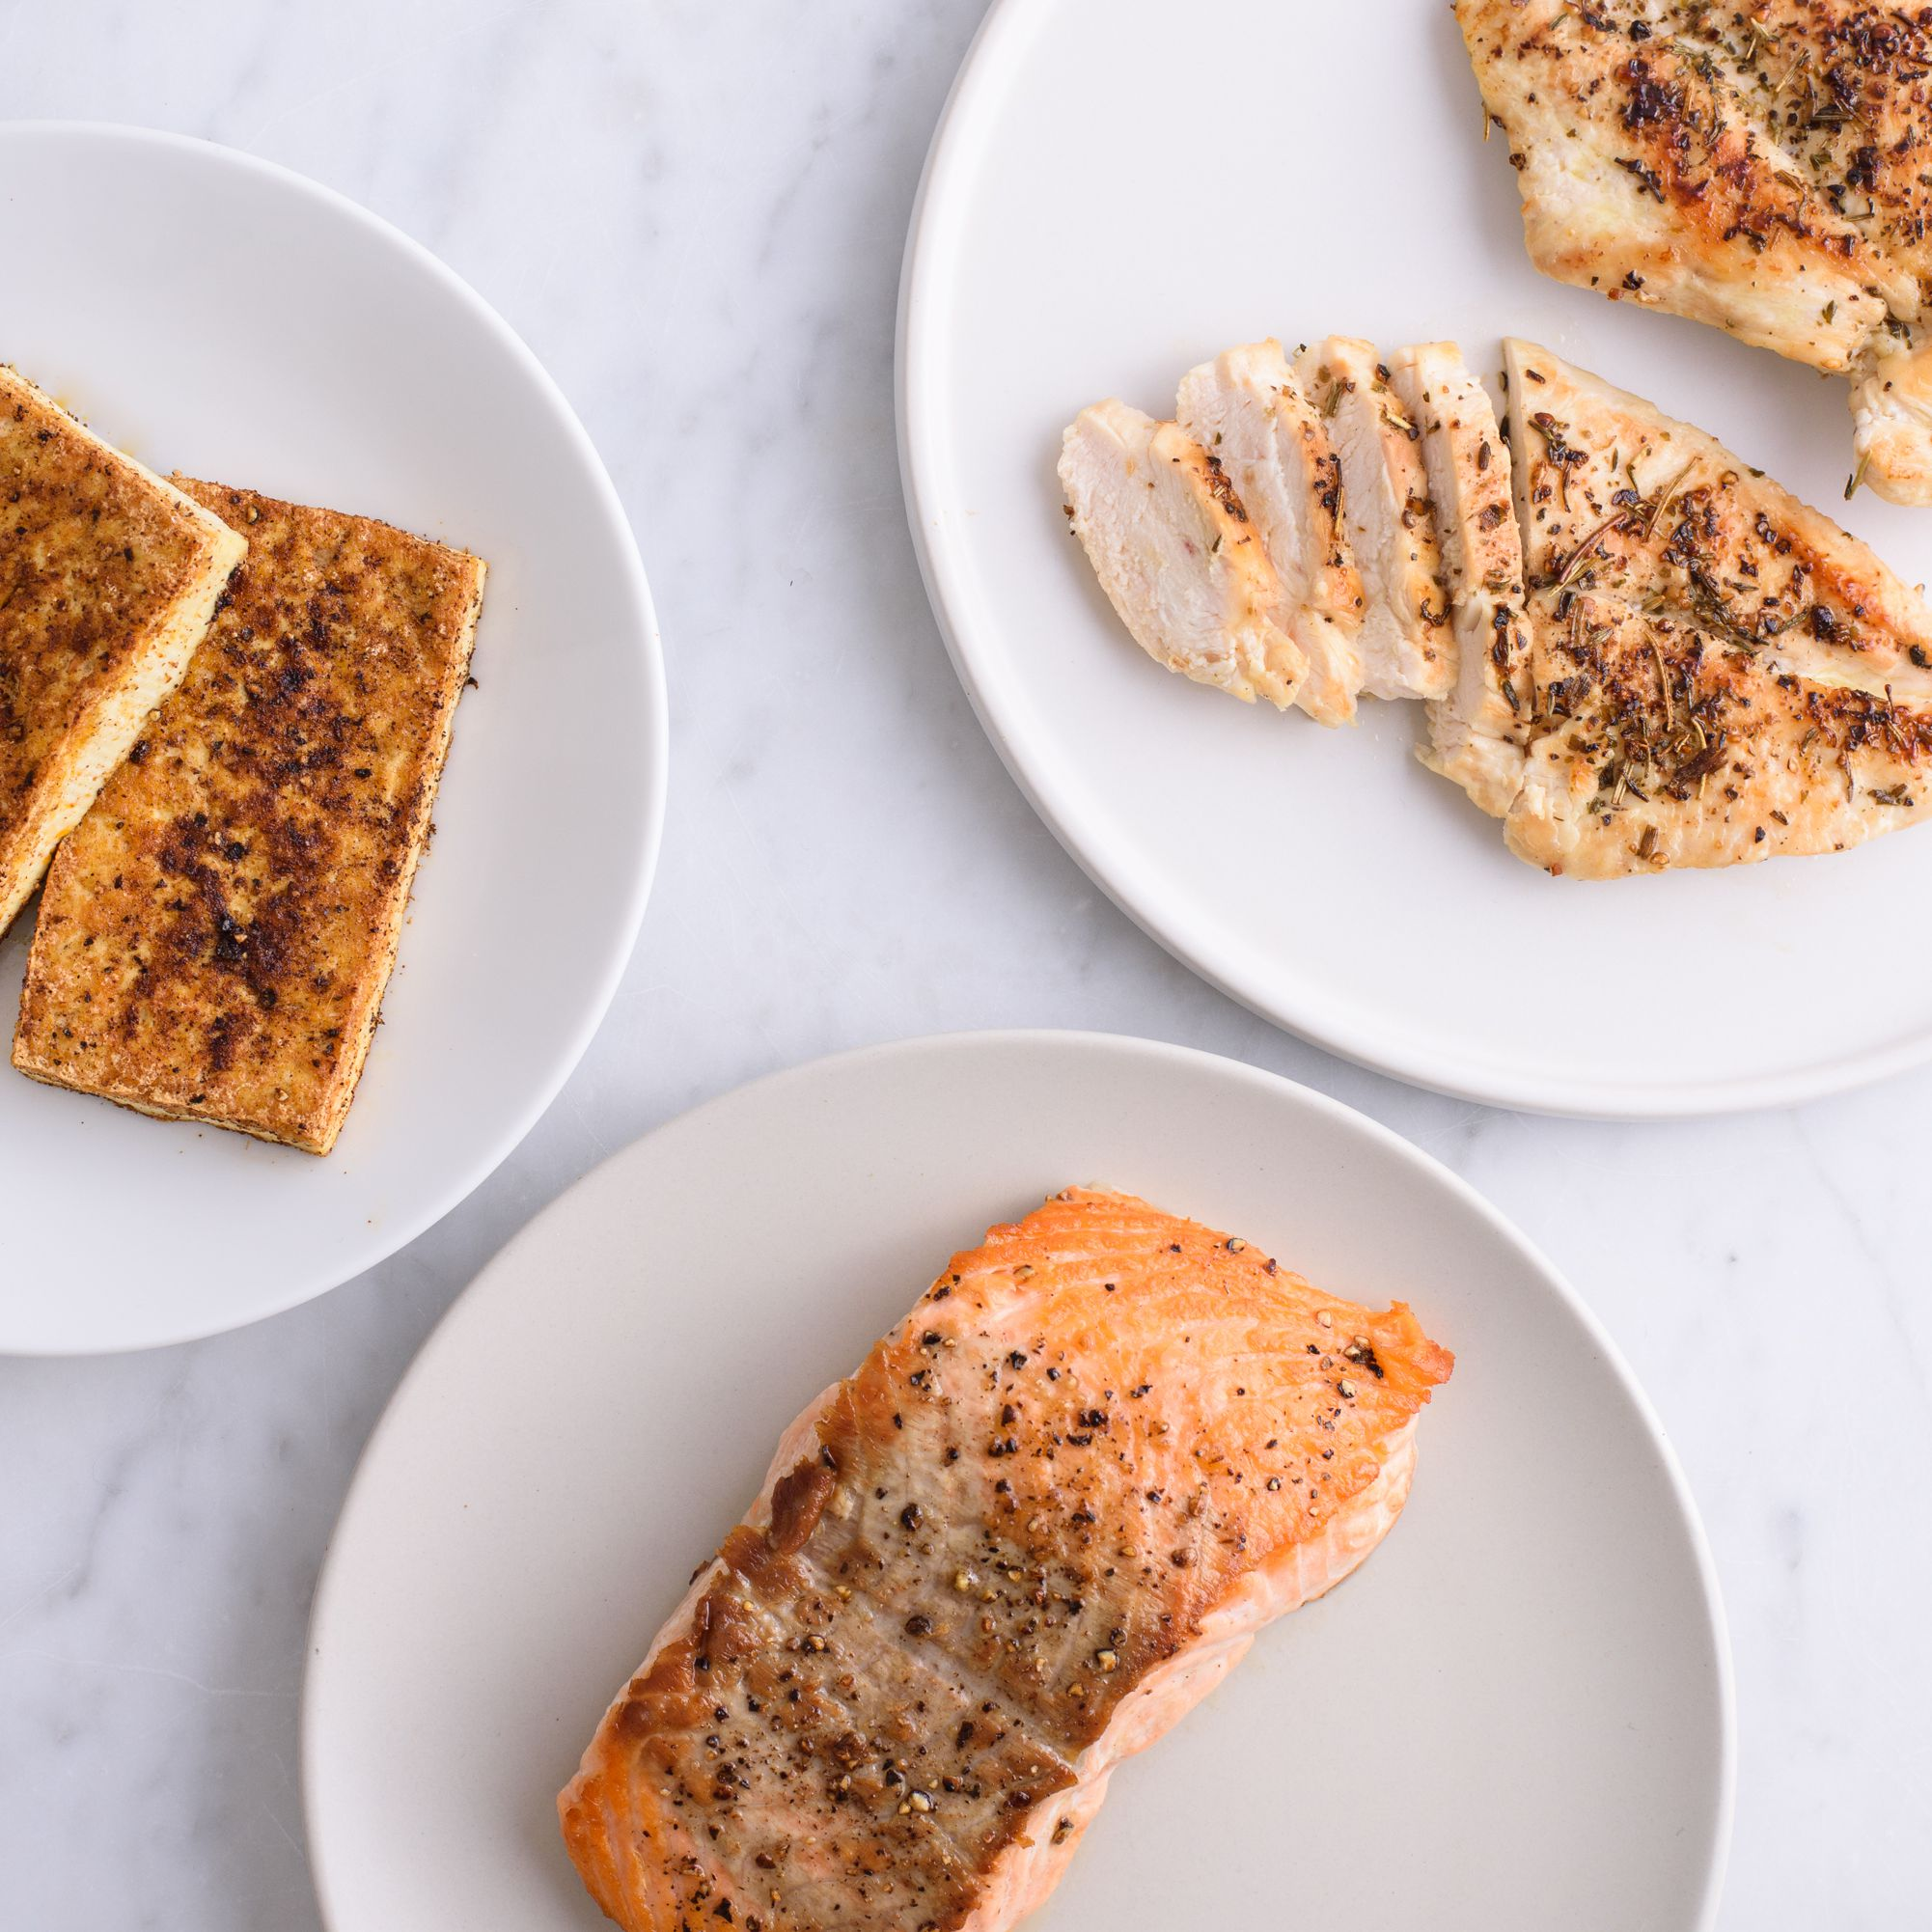 how much protein should i eat while dieting